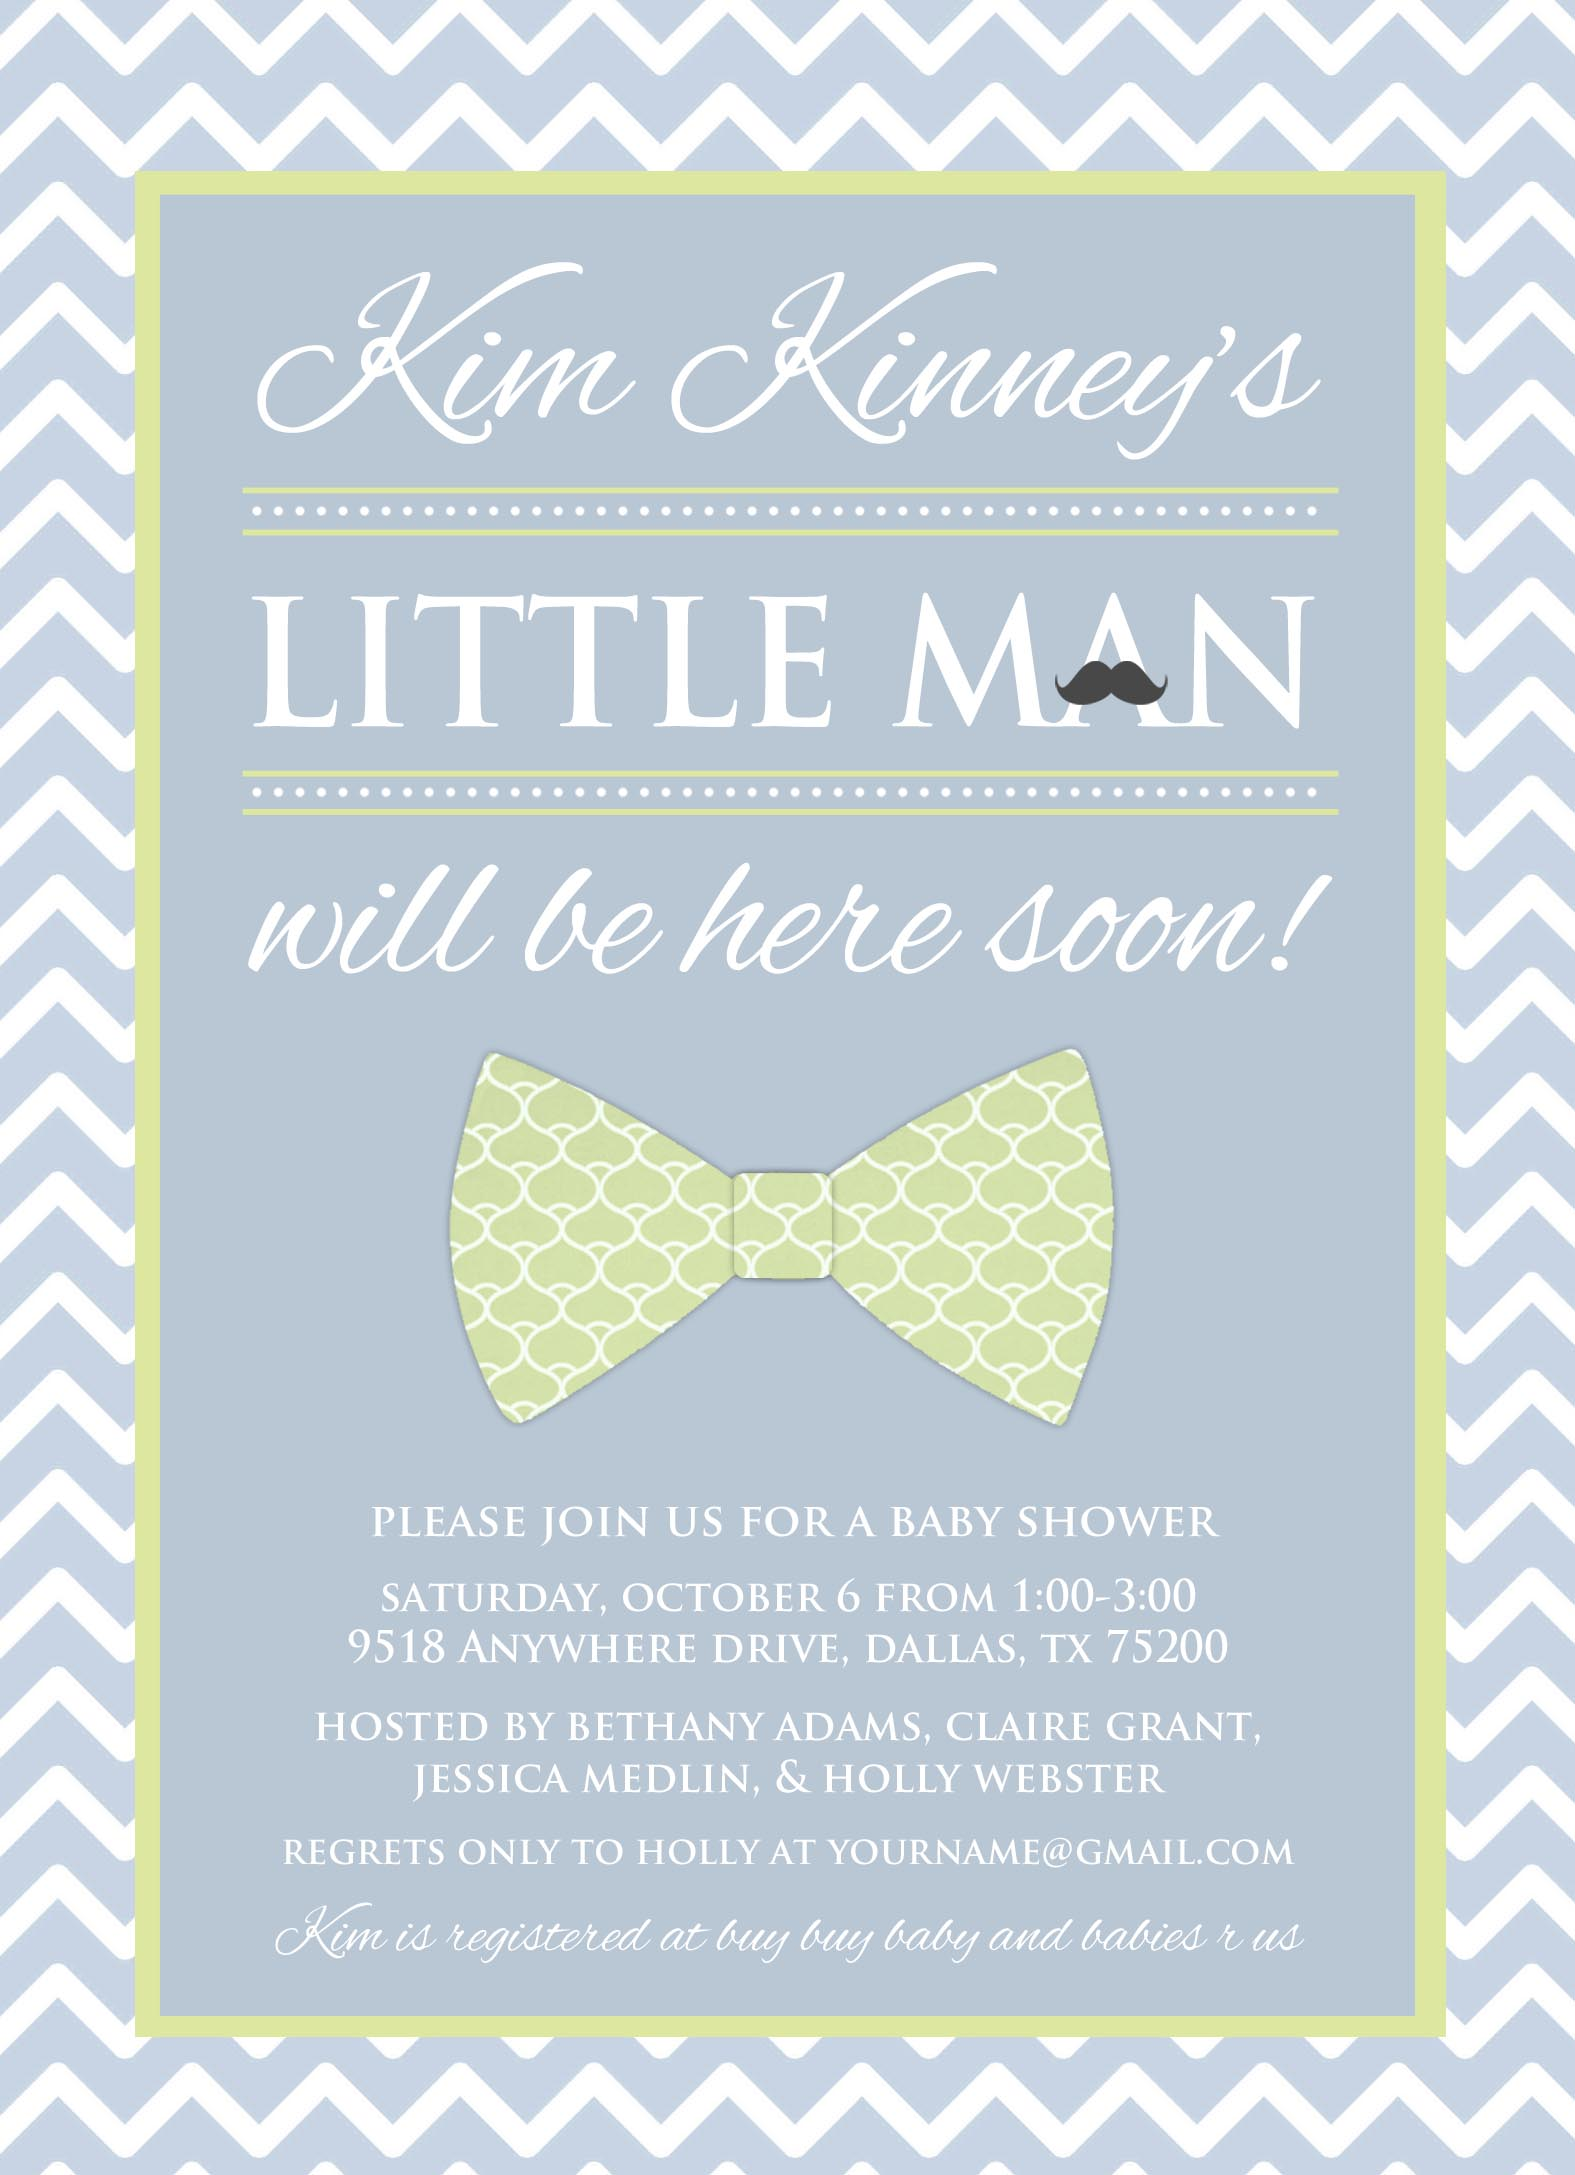 Baby Shower Invitations Bow Tie as awesome invitation template